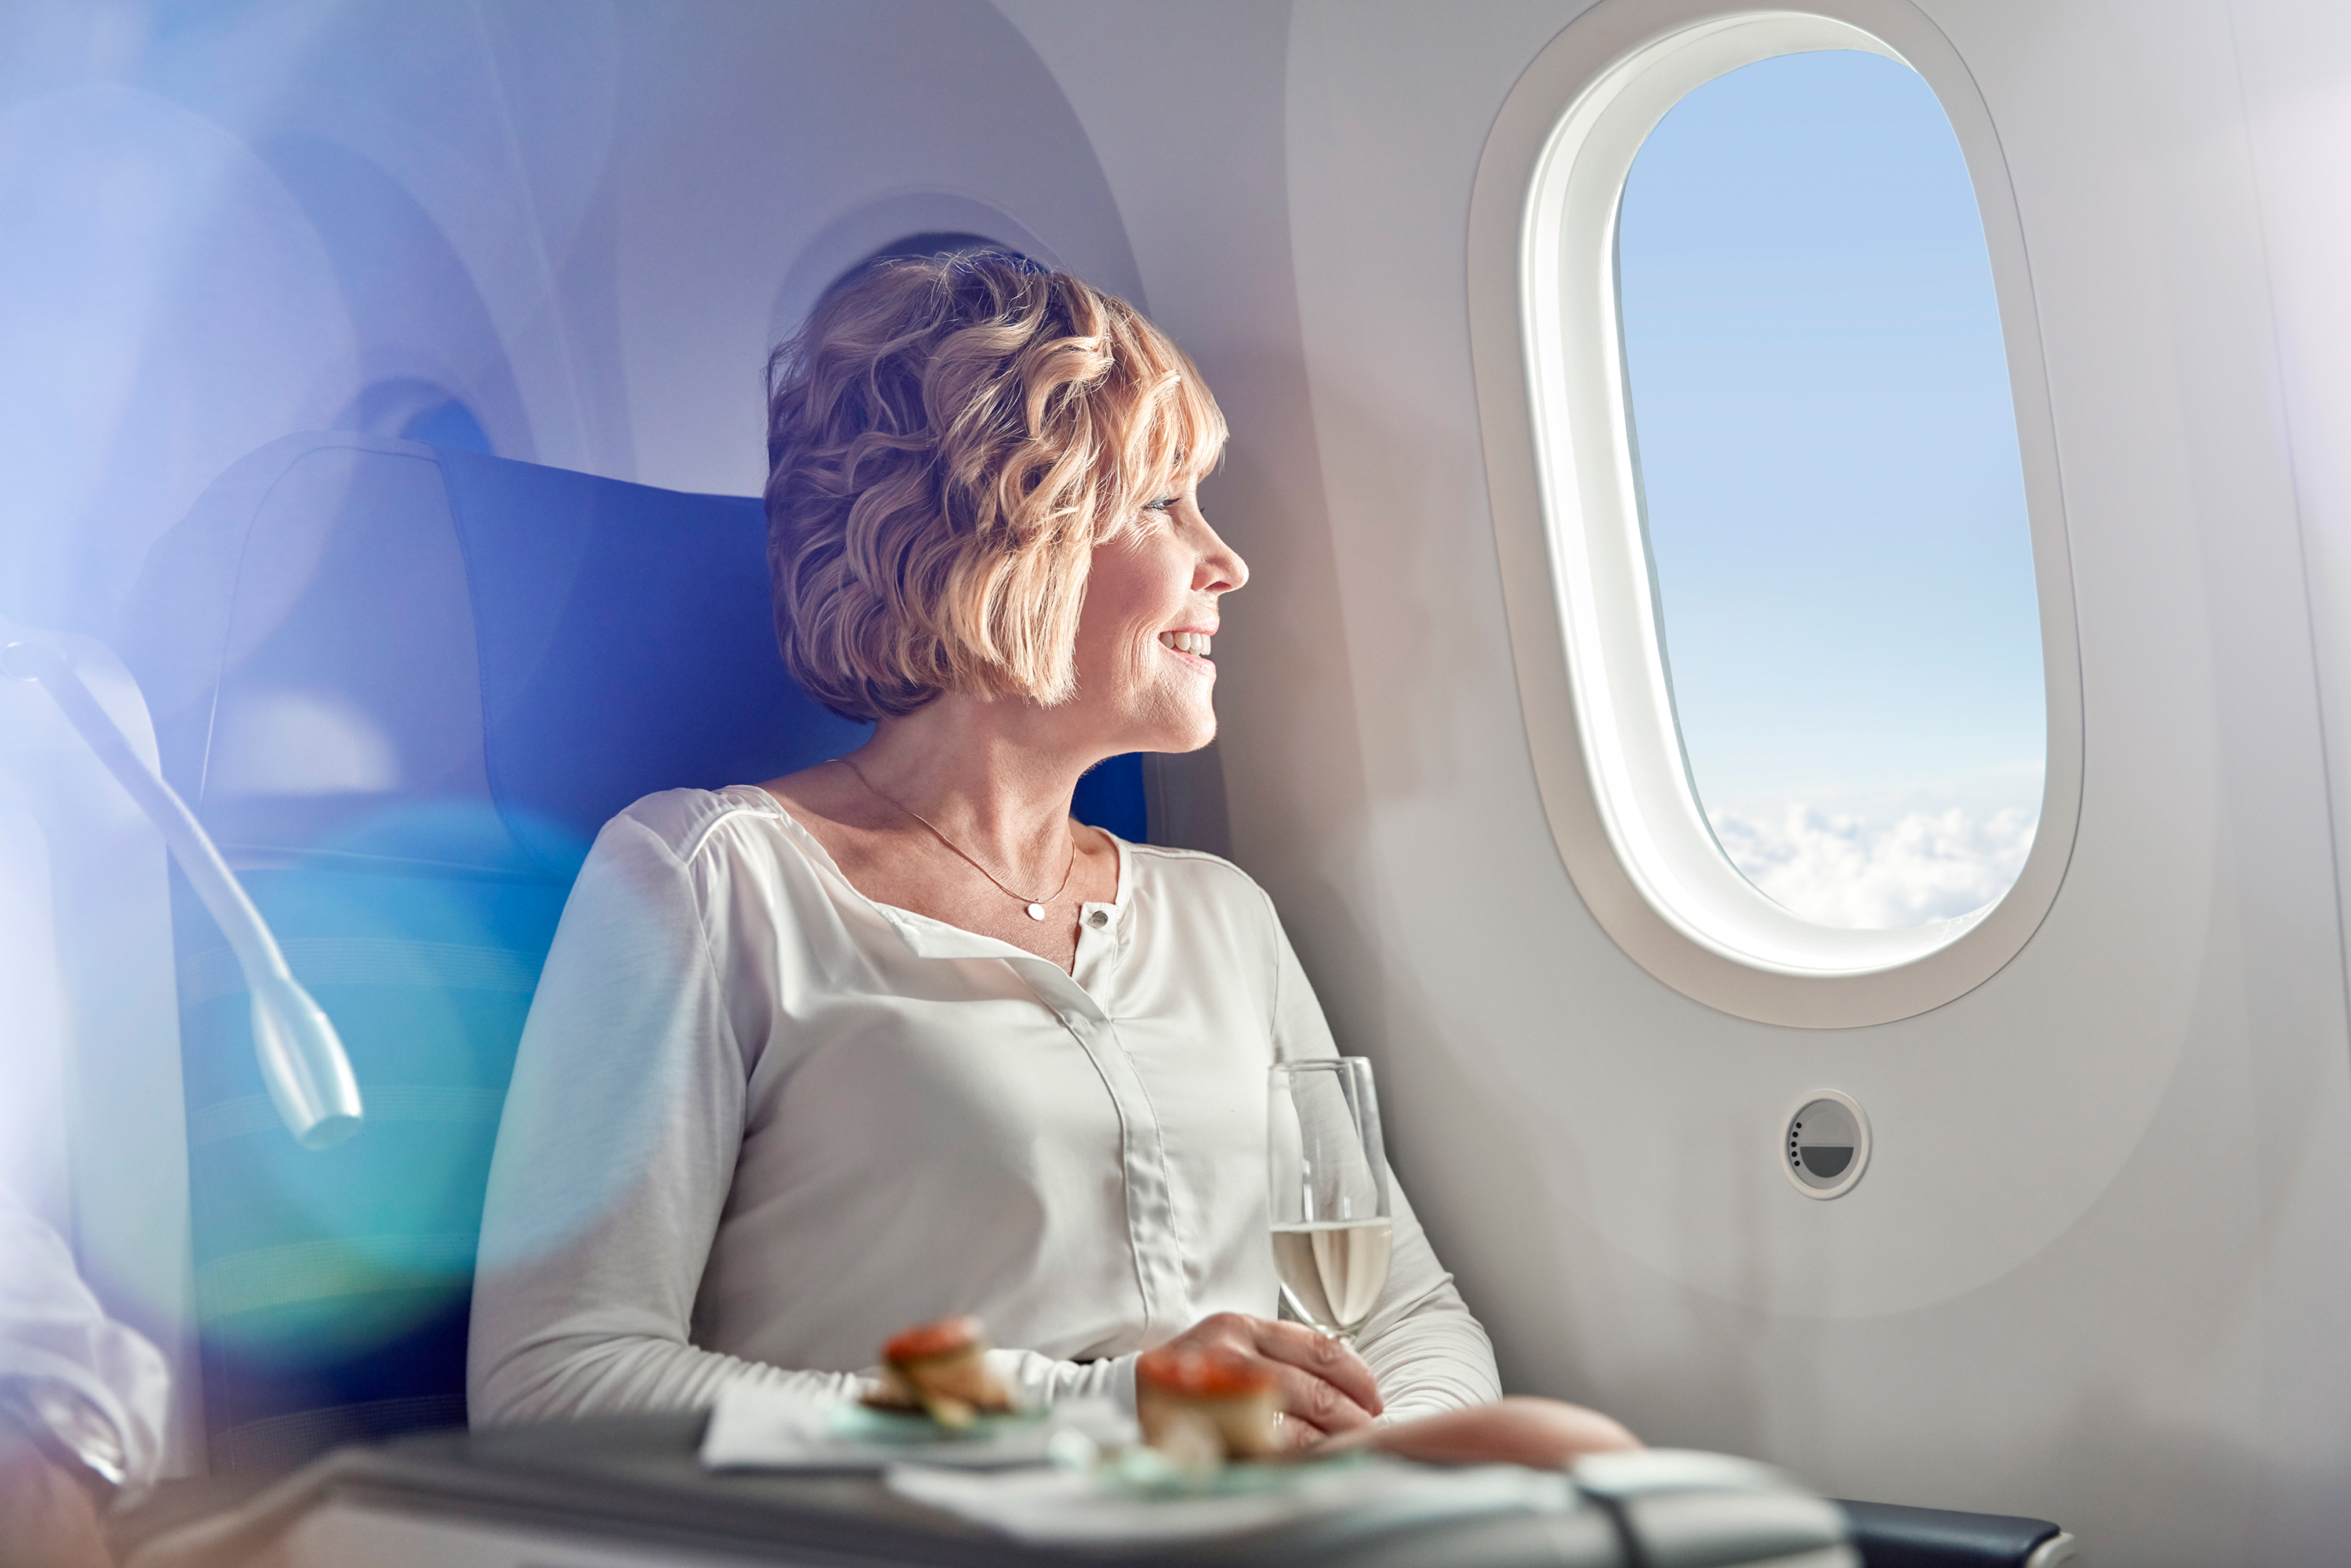 How to Get Upgraded on Your Next Flight